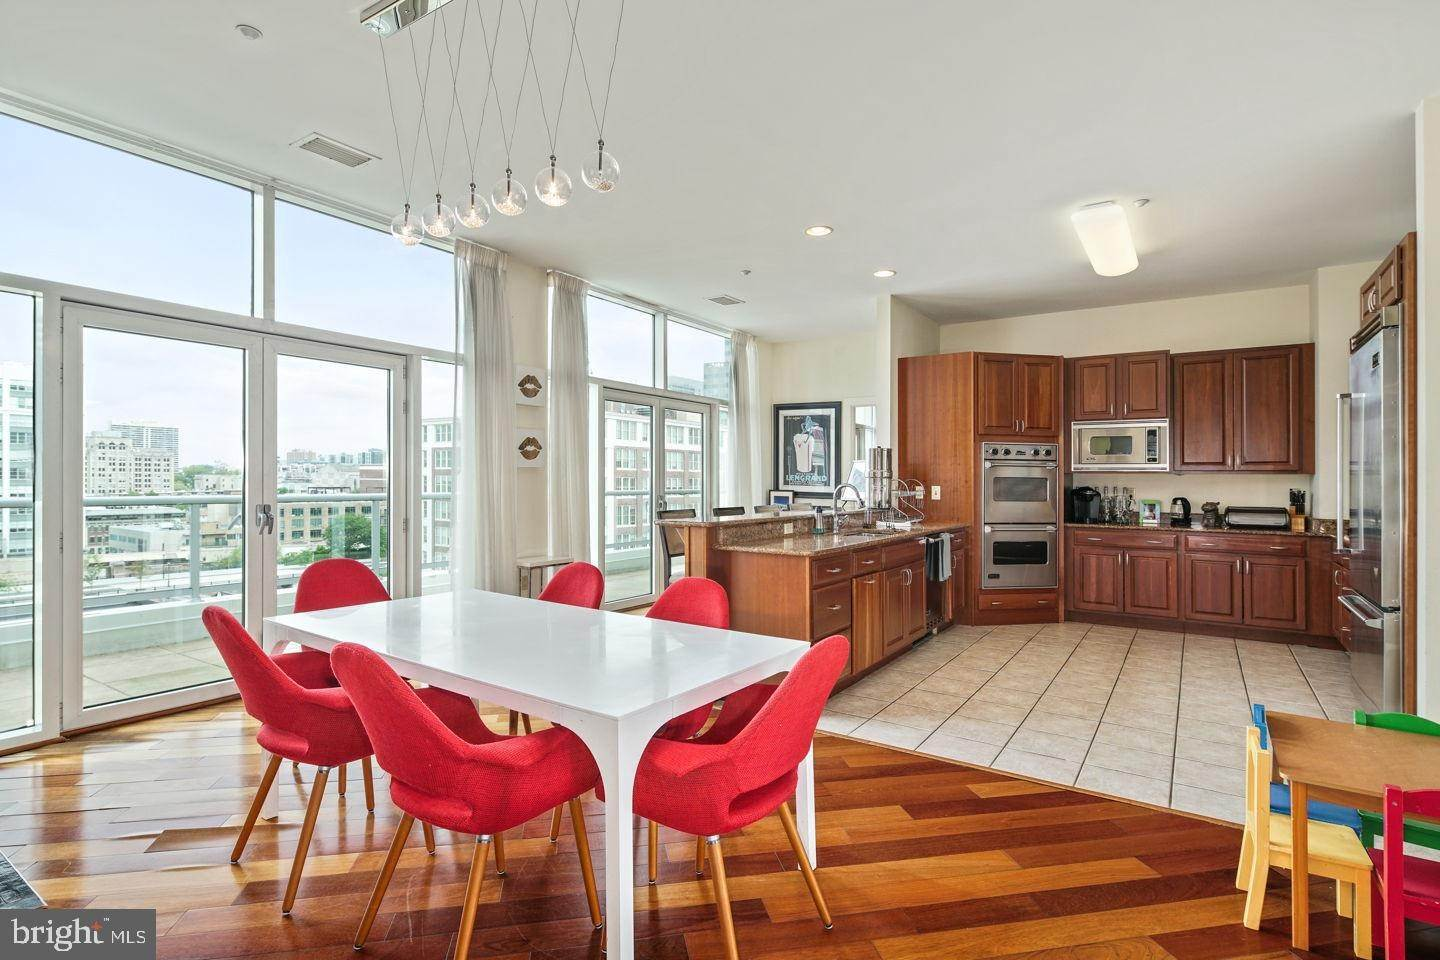 Condominiums for Sale at 23 S 23RD ST #7A Philadelphia, Pennsylvania 19103 United States